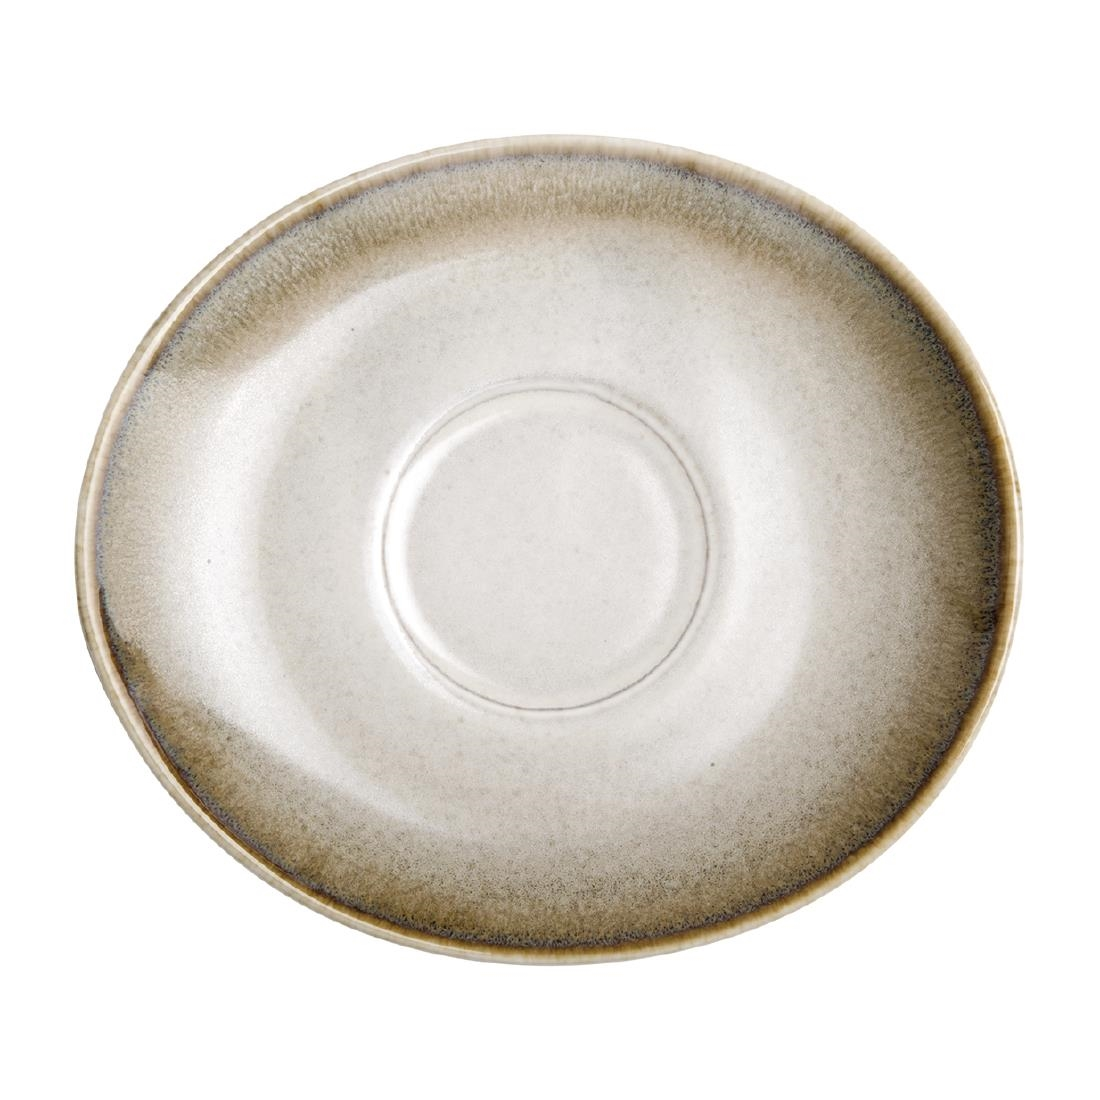 Olympia Birch Taupe Saucers 141 x 126mm Pack of 6